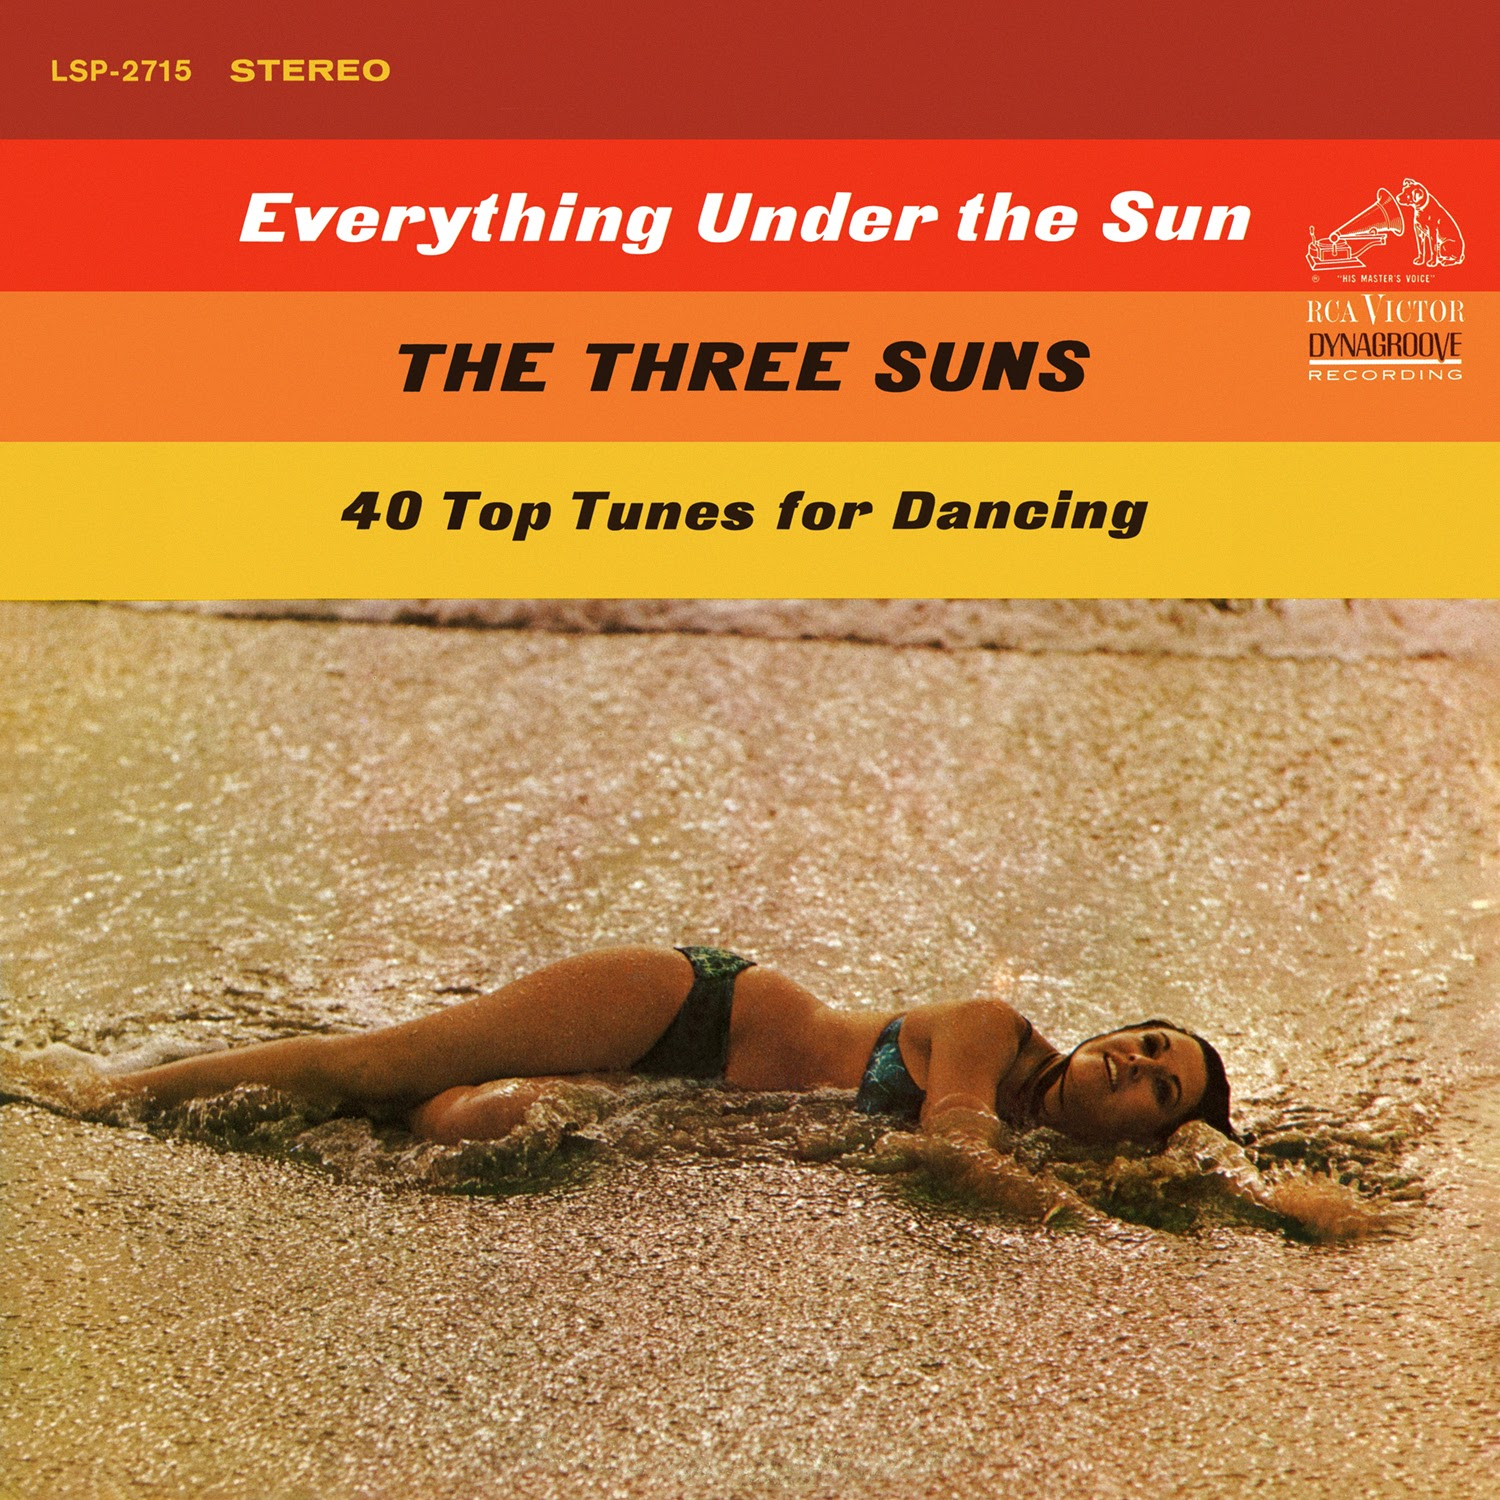 The Three Suns